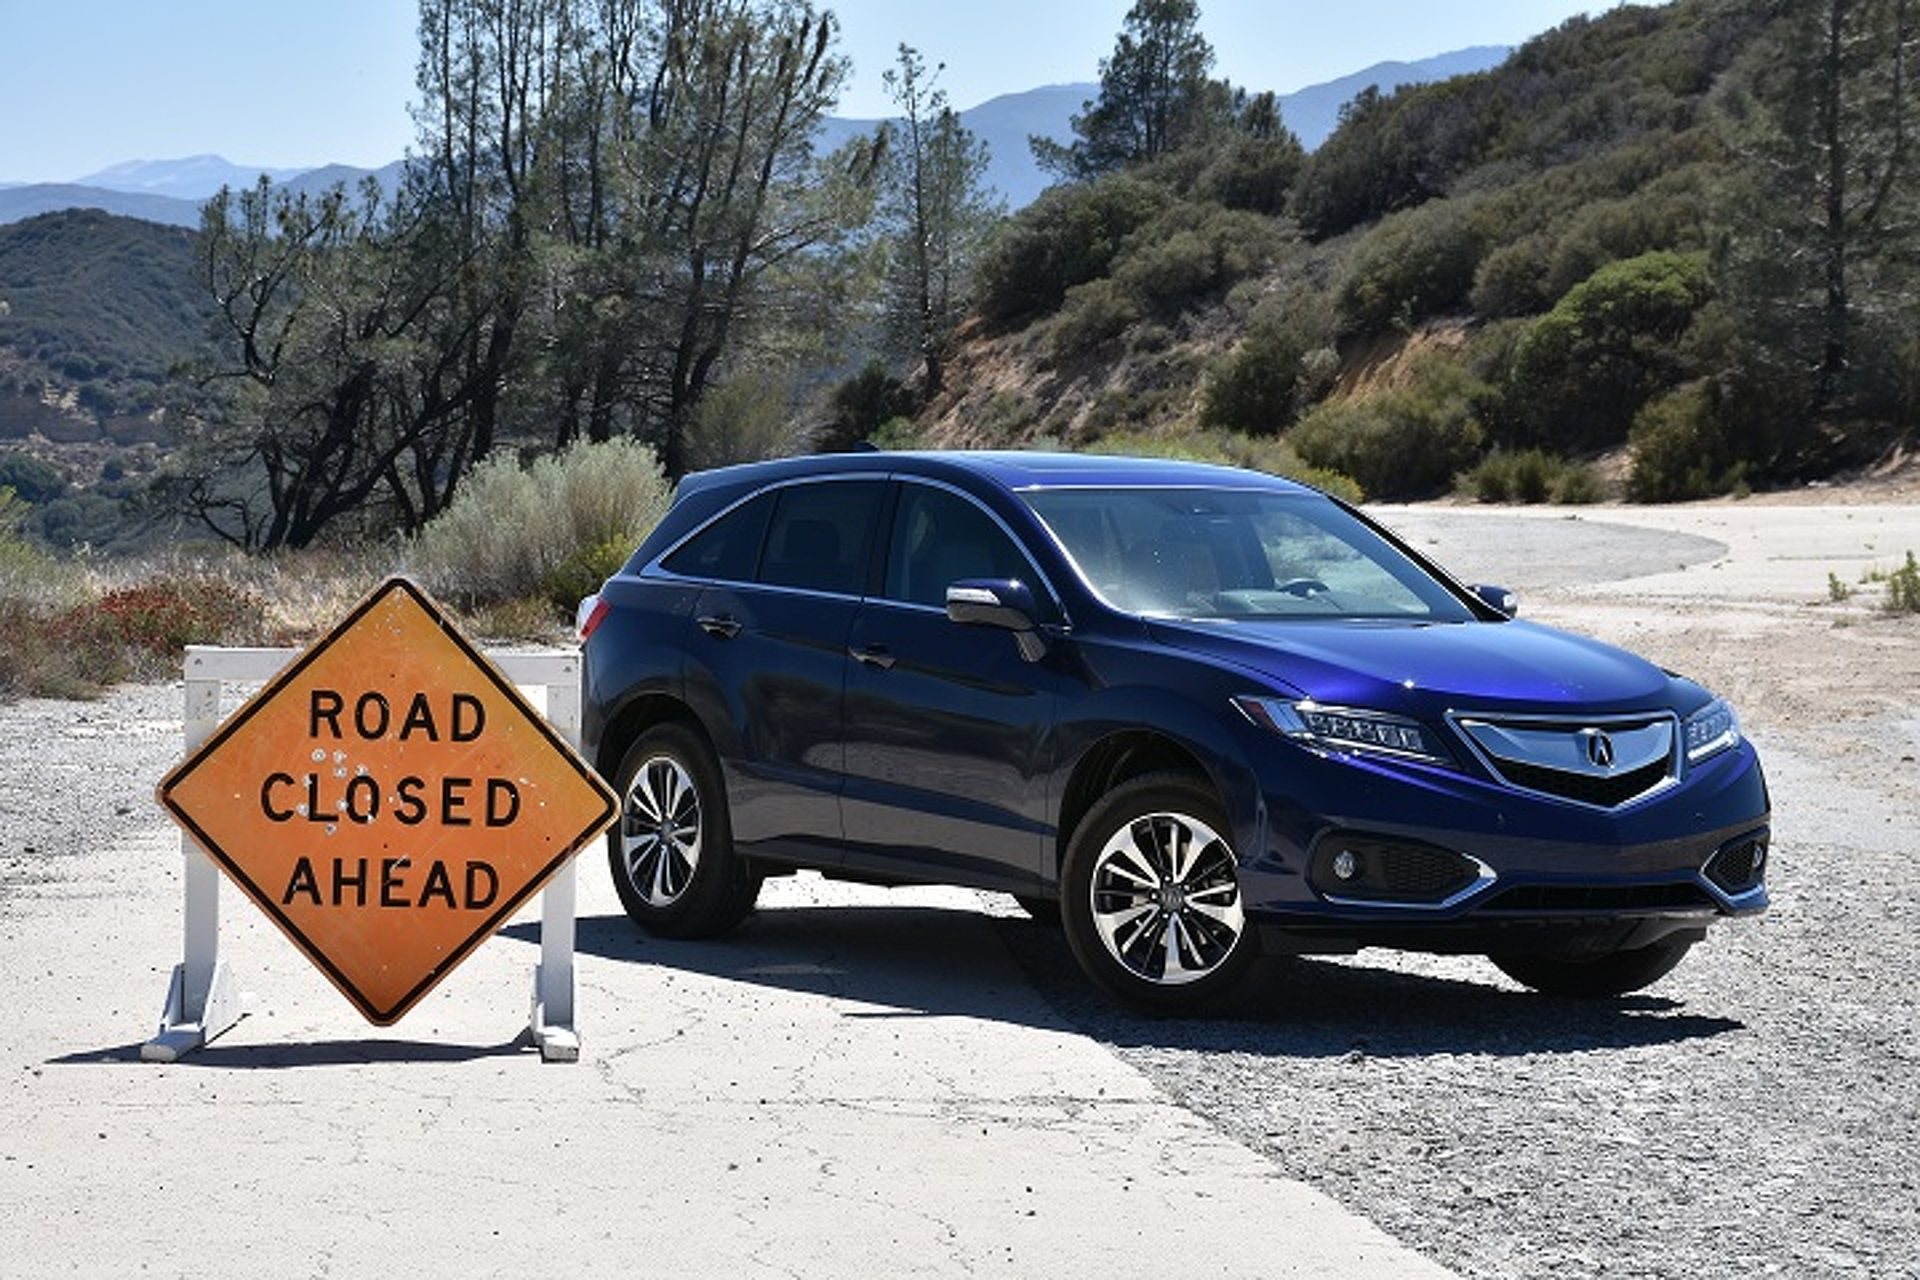 acura first ca drive rdx doubleclutch review